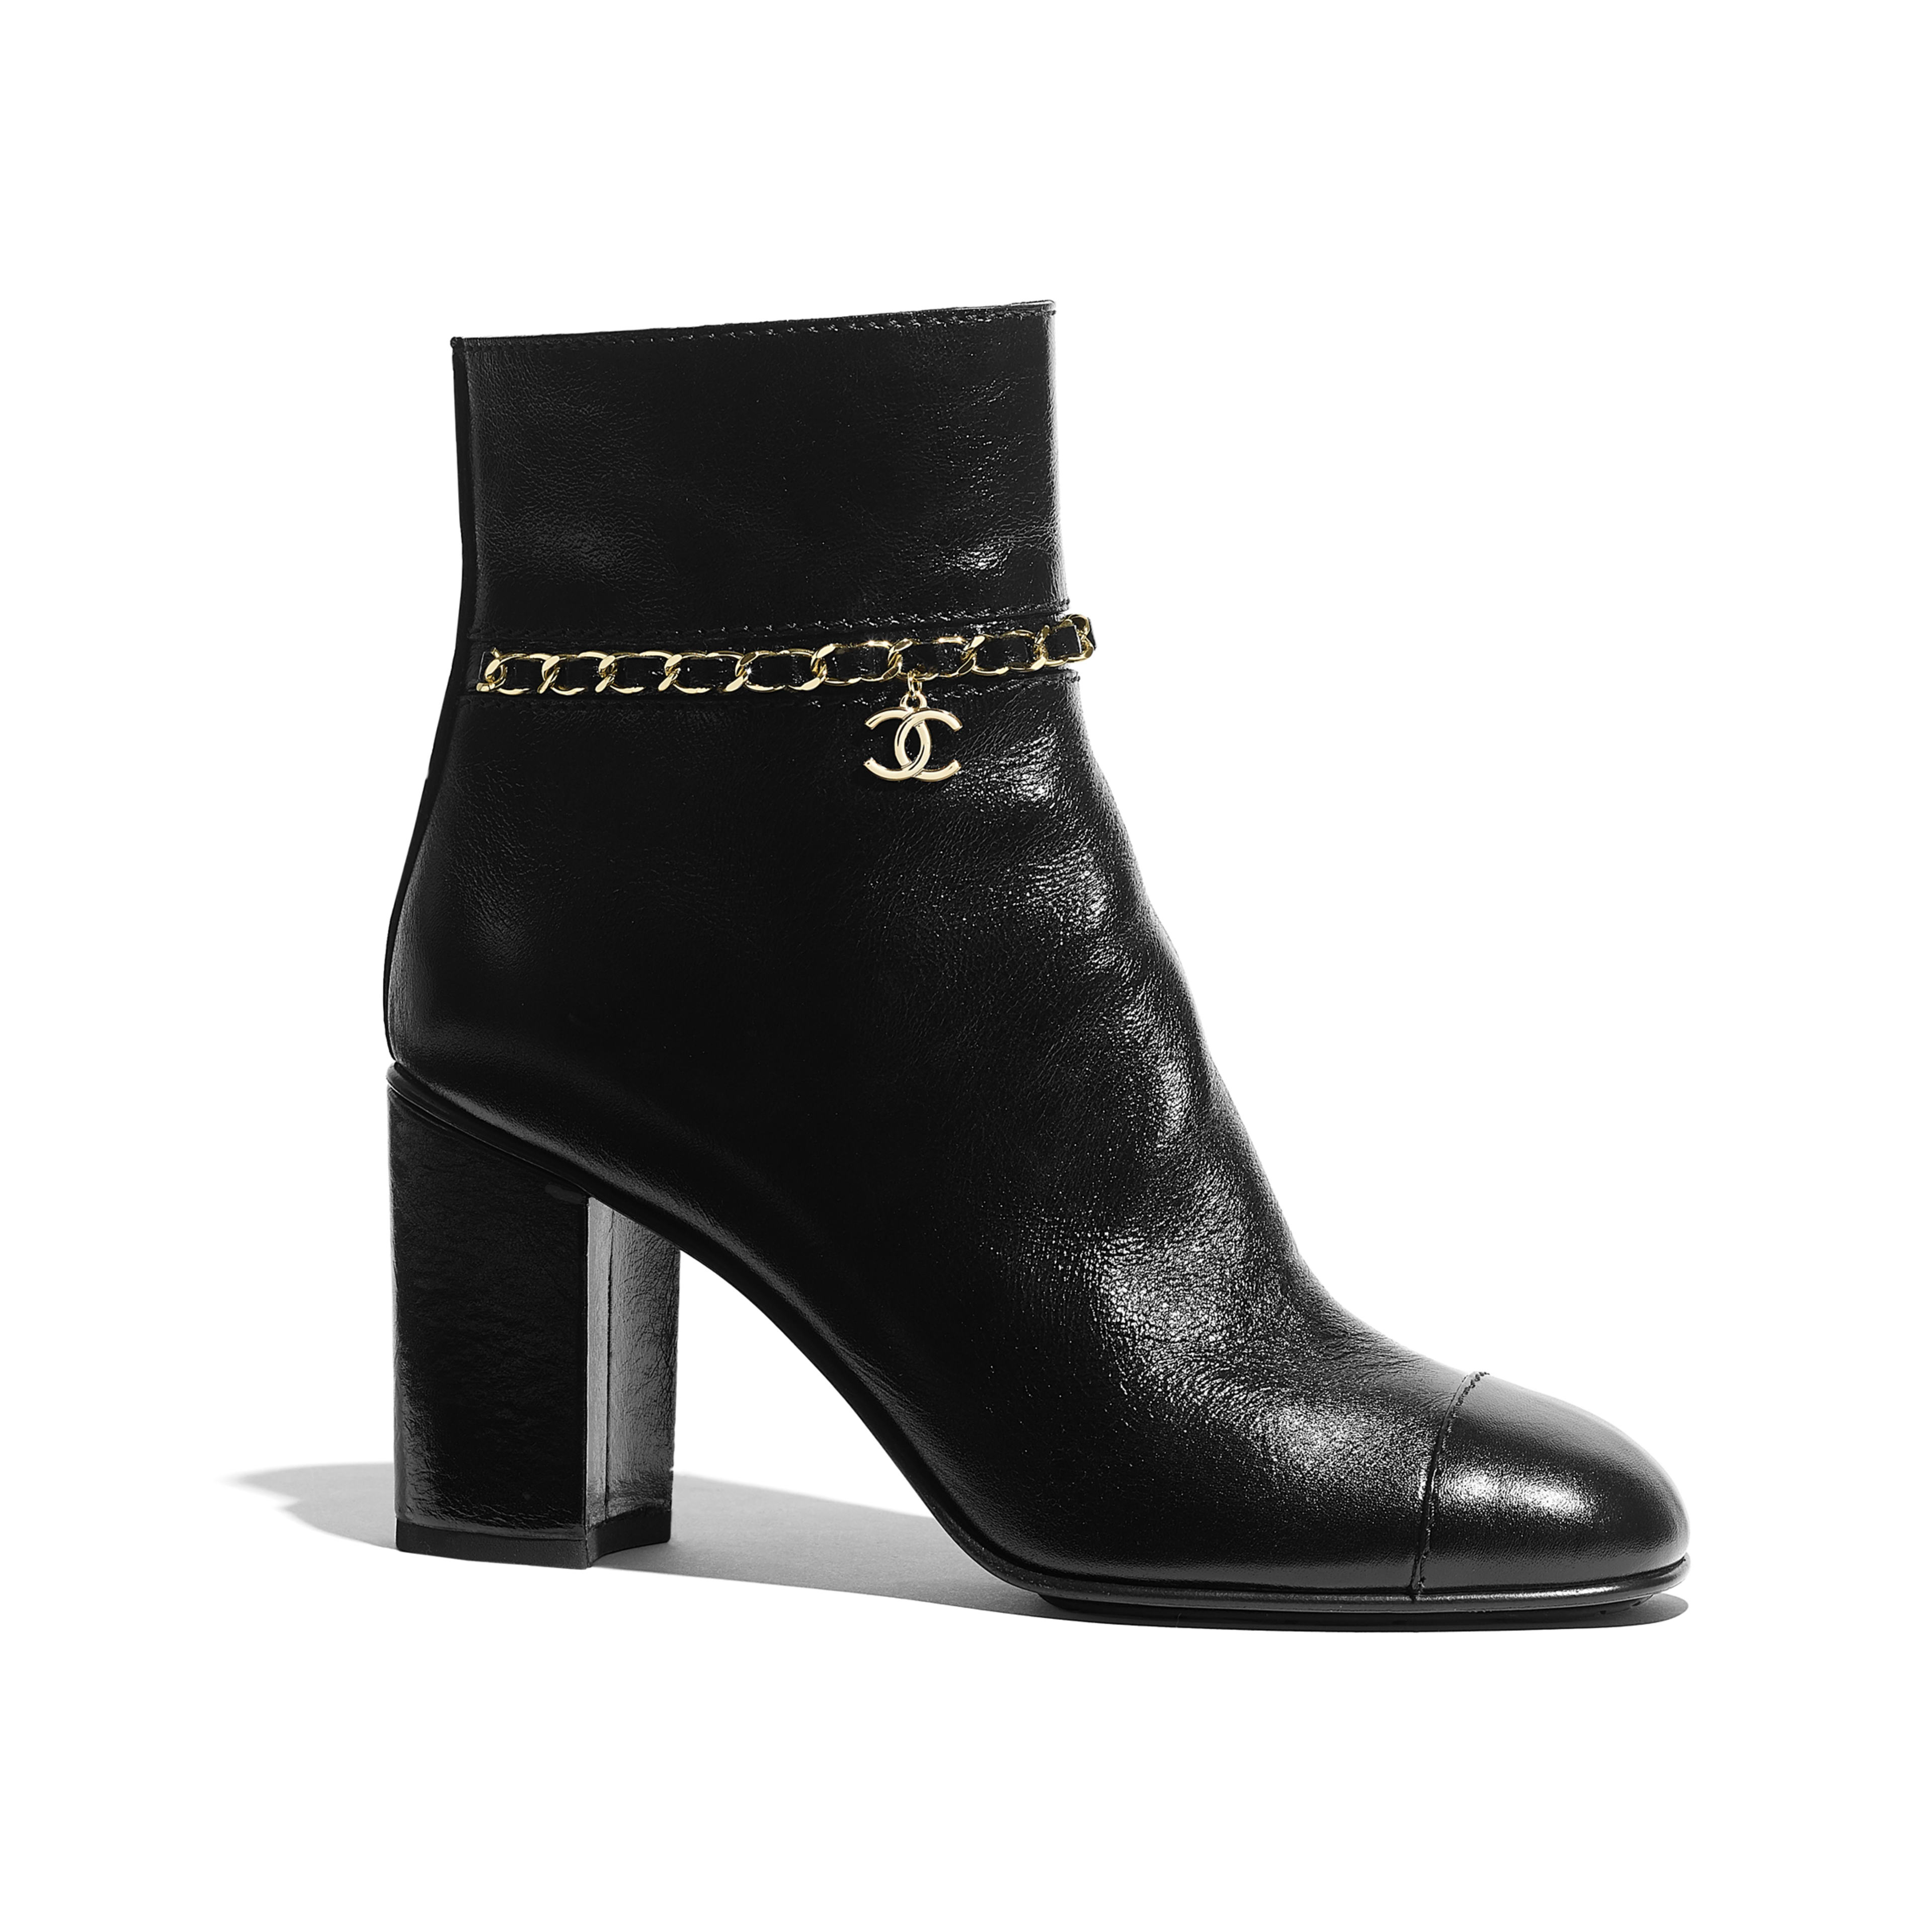 Ankle Boots - Black - Calfskin - Default view - see full sized version